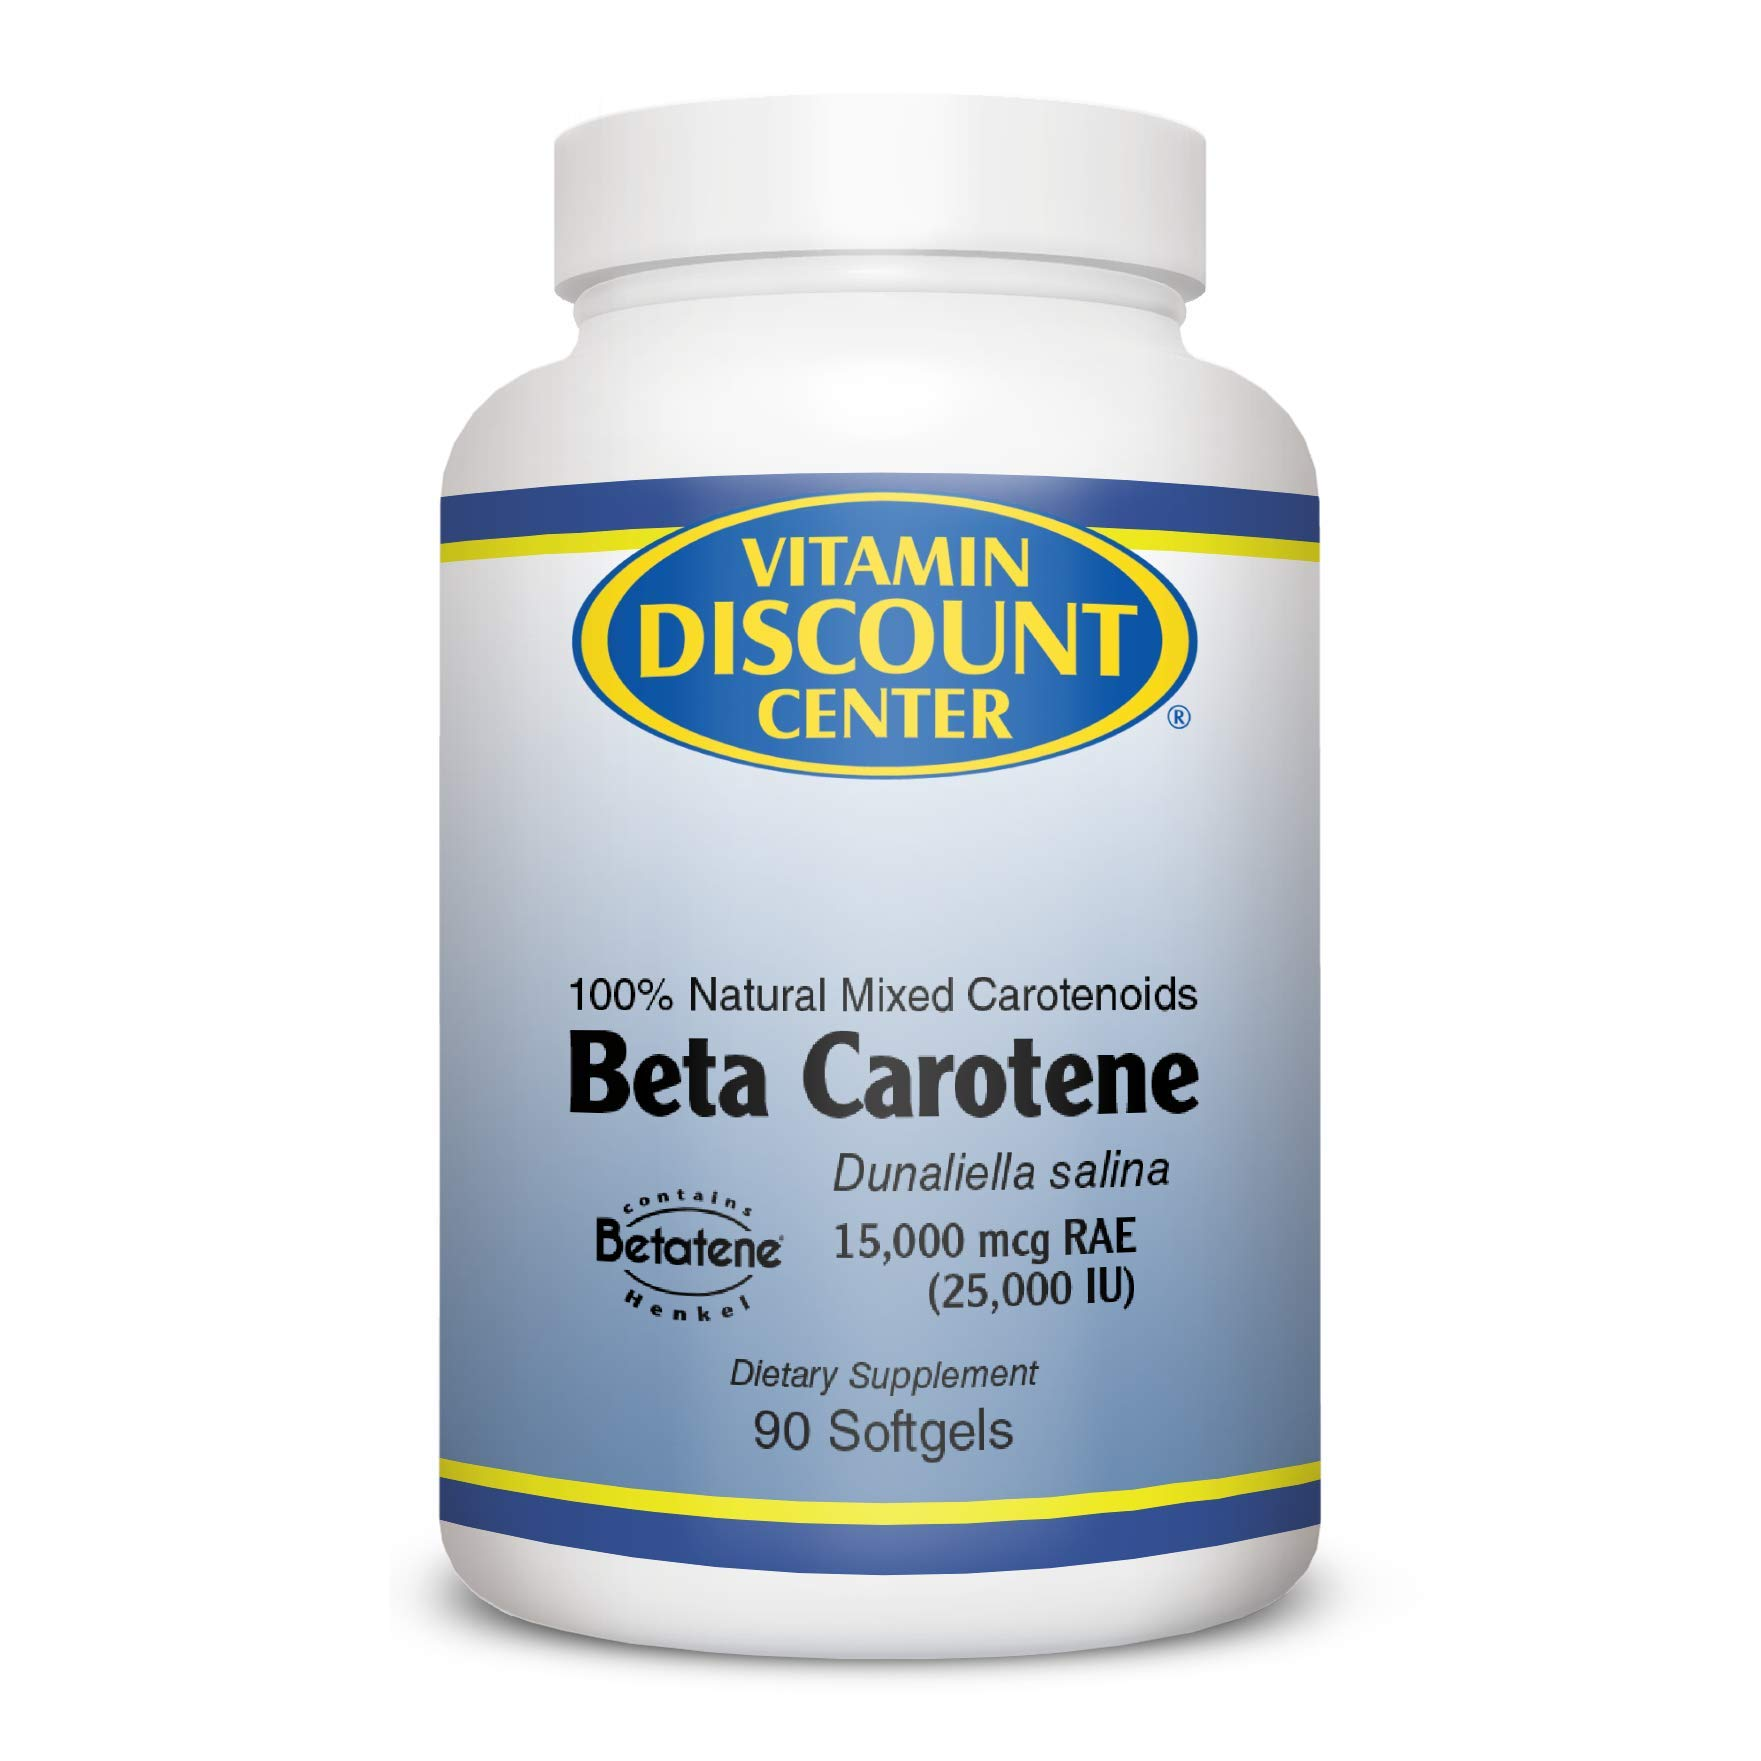 Vitamin Discount Center Beta Carotene 25000 IU, 90 Softgels by Vitamin Discount Center